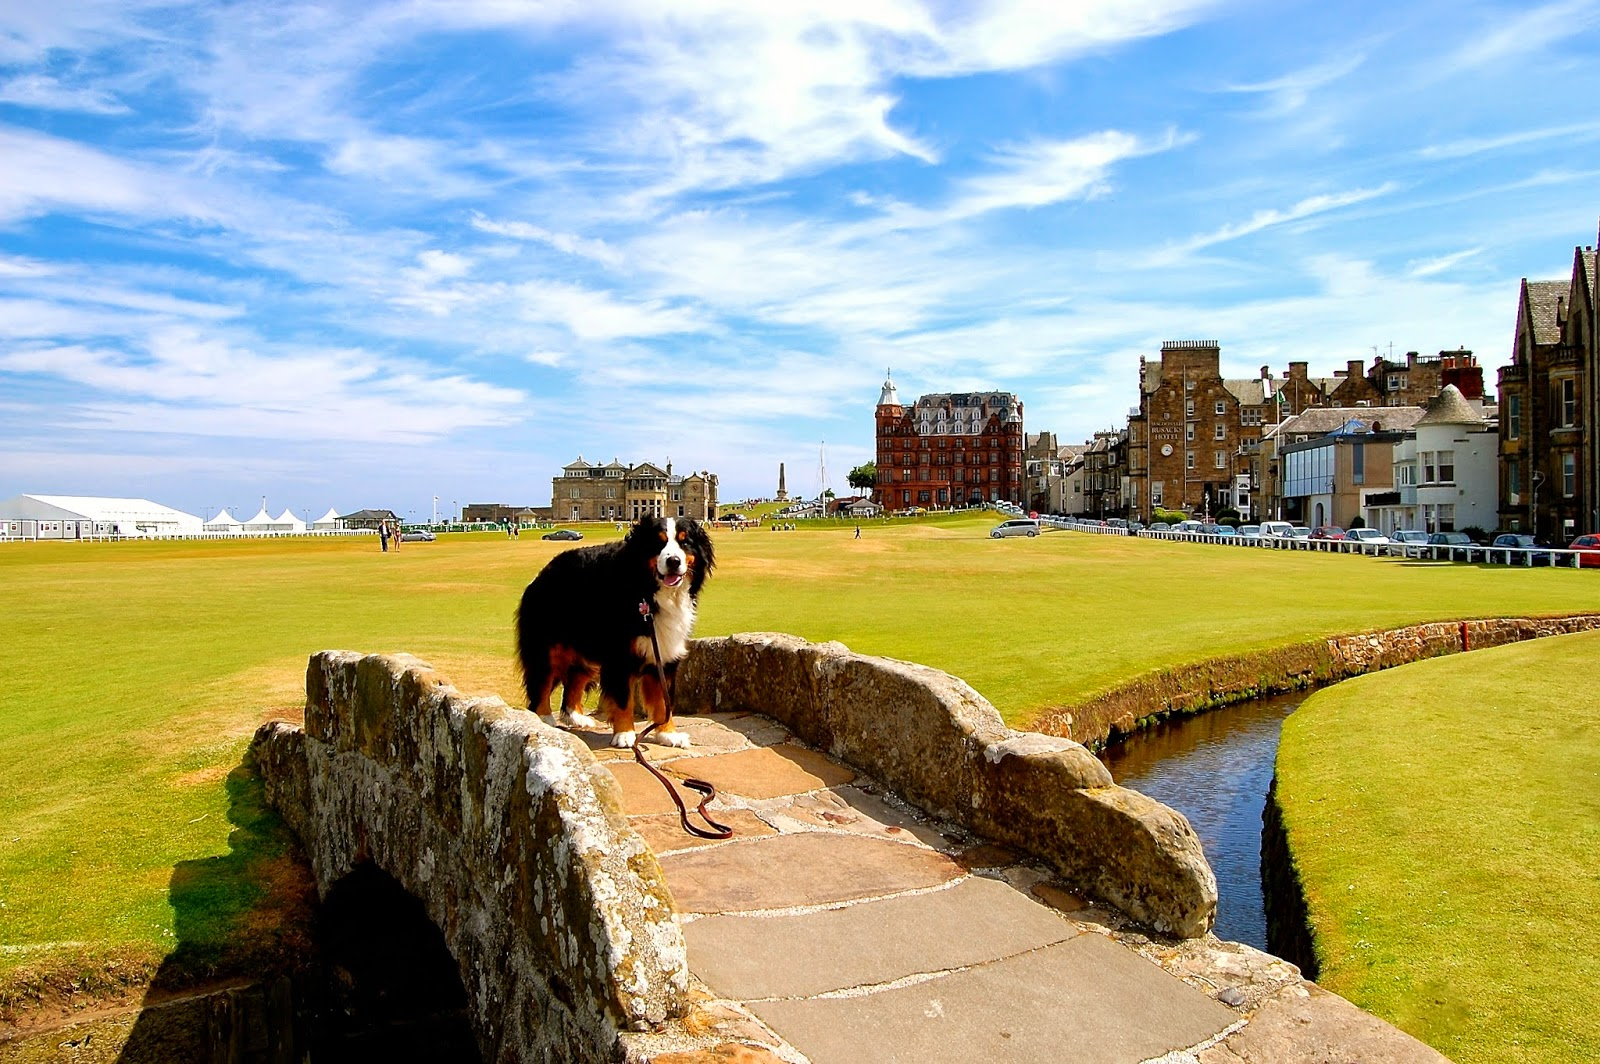 Mattie crossing the Swilcan Bridge on the Old Course in St. Andrews